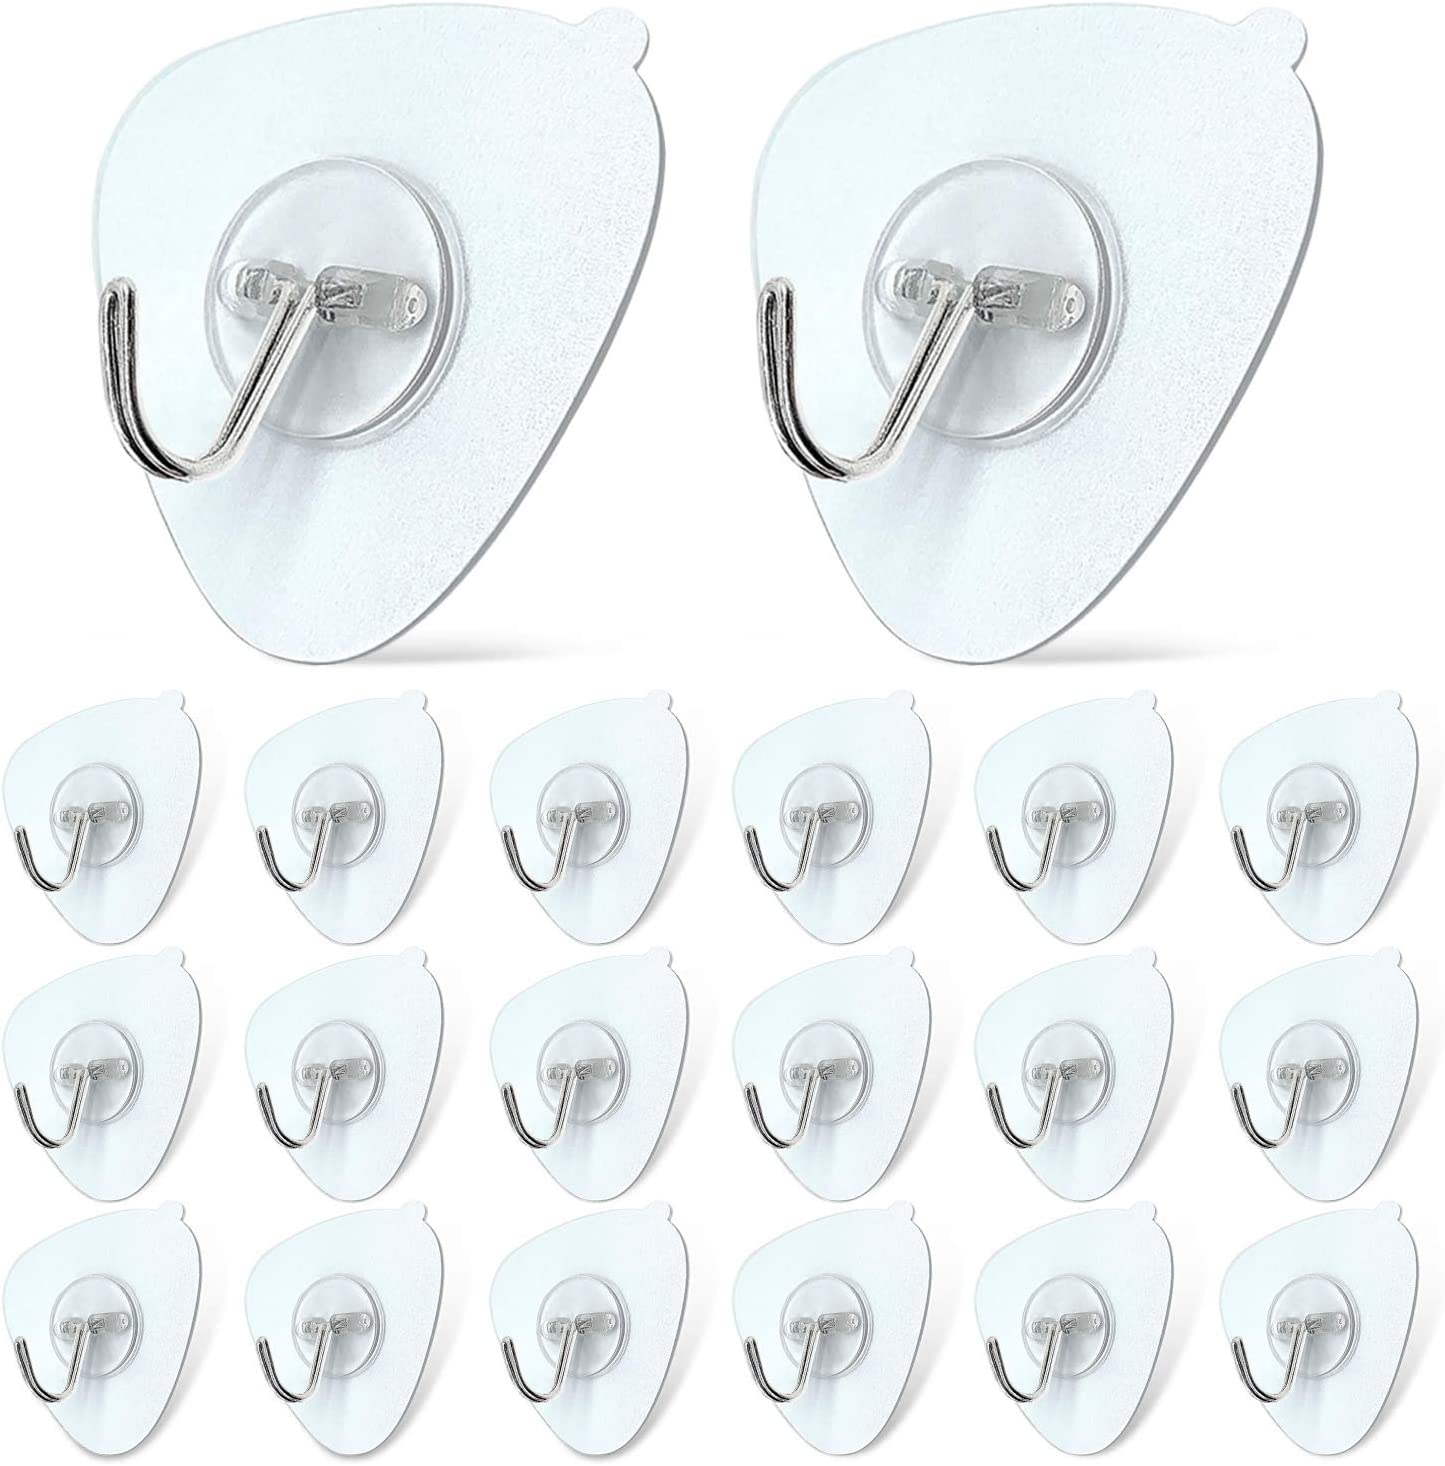 DSMY 20 Pack Self Adhesive He Over item handling ☆ Stick Wall Max 49% OFF Hooks